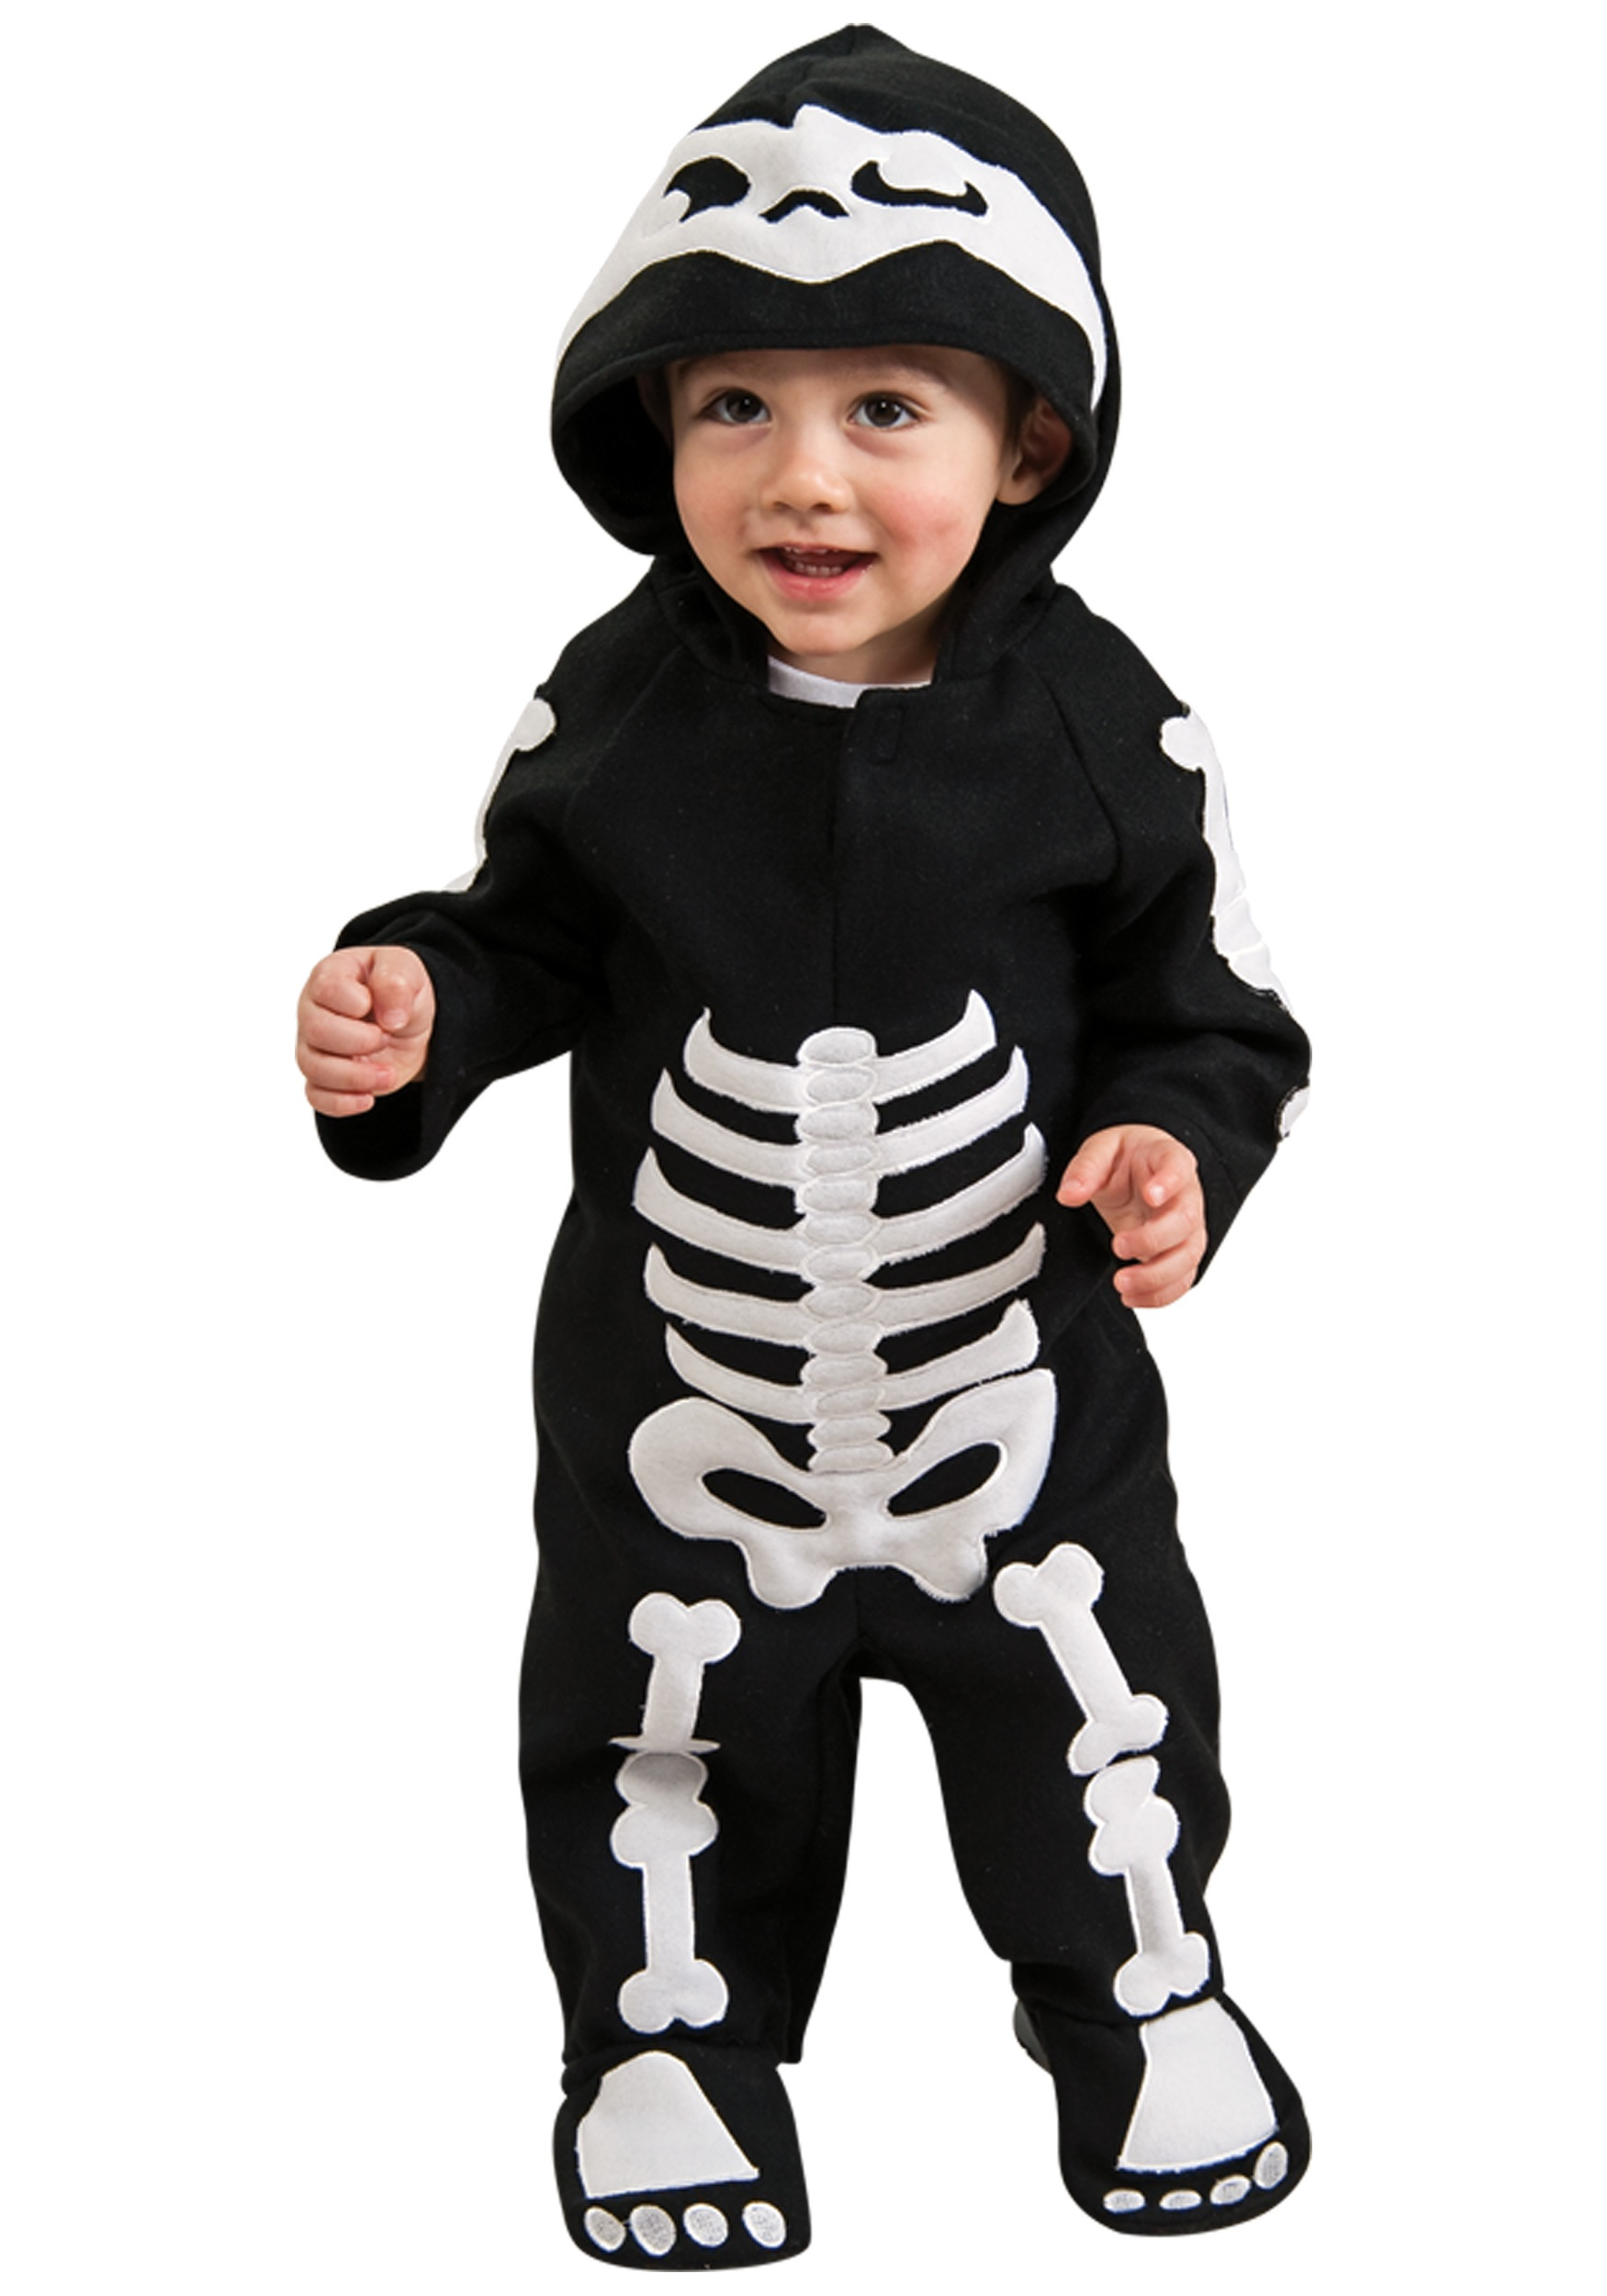 infant toddler skeleton costume - Skeleton Halloween Costume For Kids